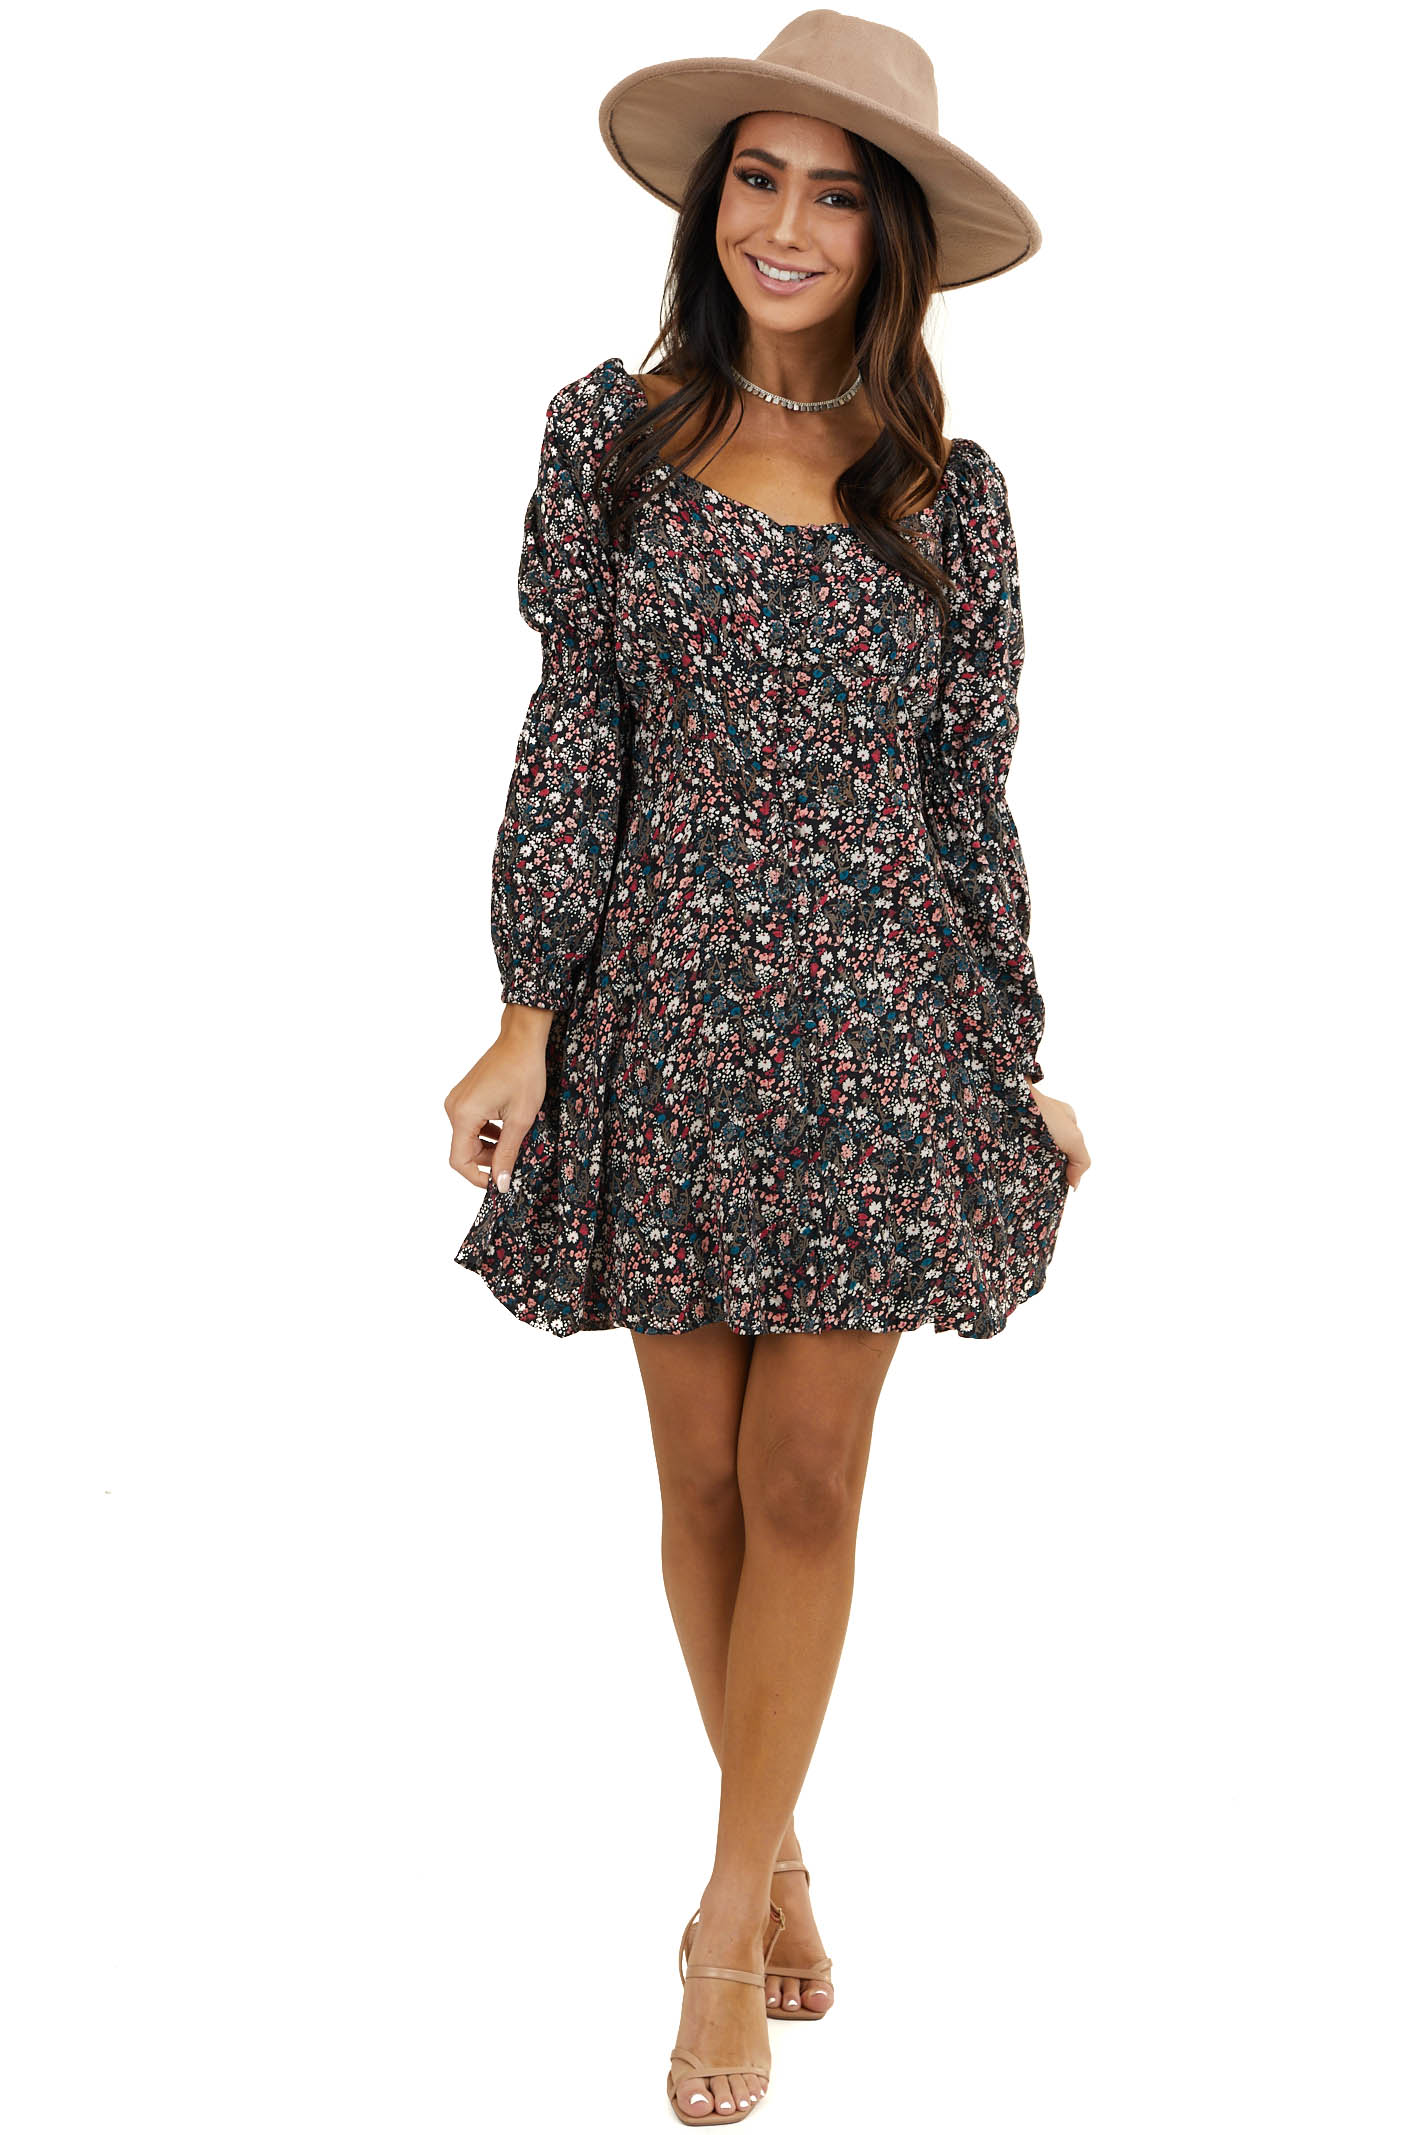 Jet Black Floral Button Up Mini Dress with Bubble Sleeves